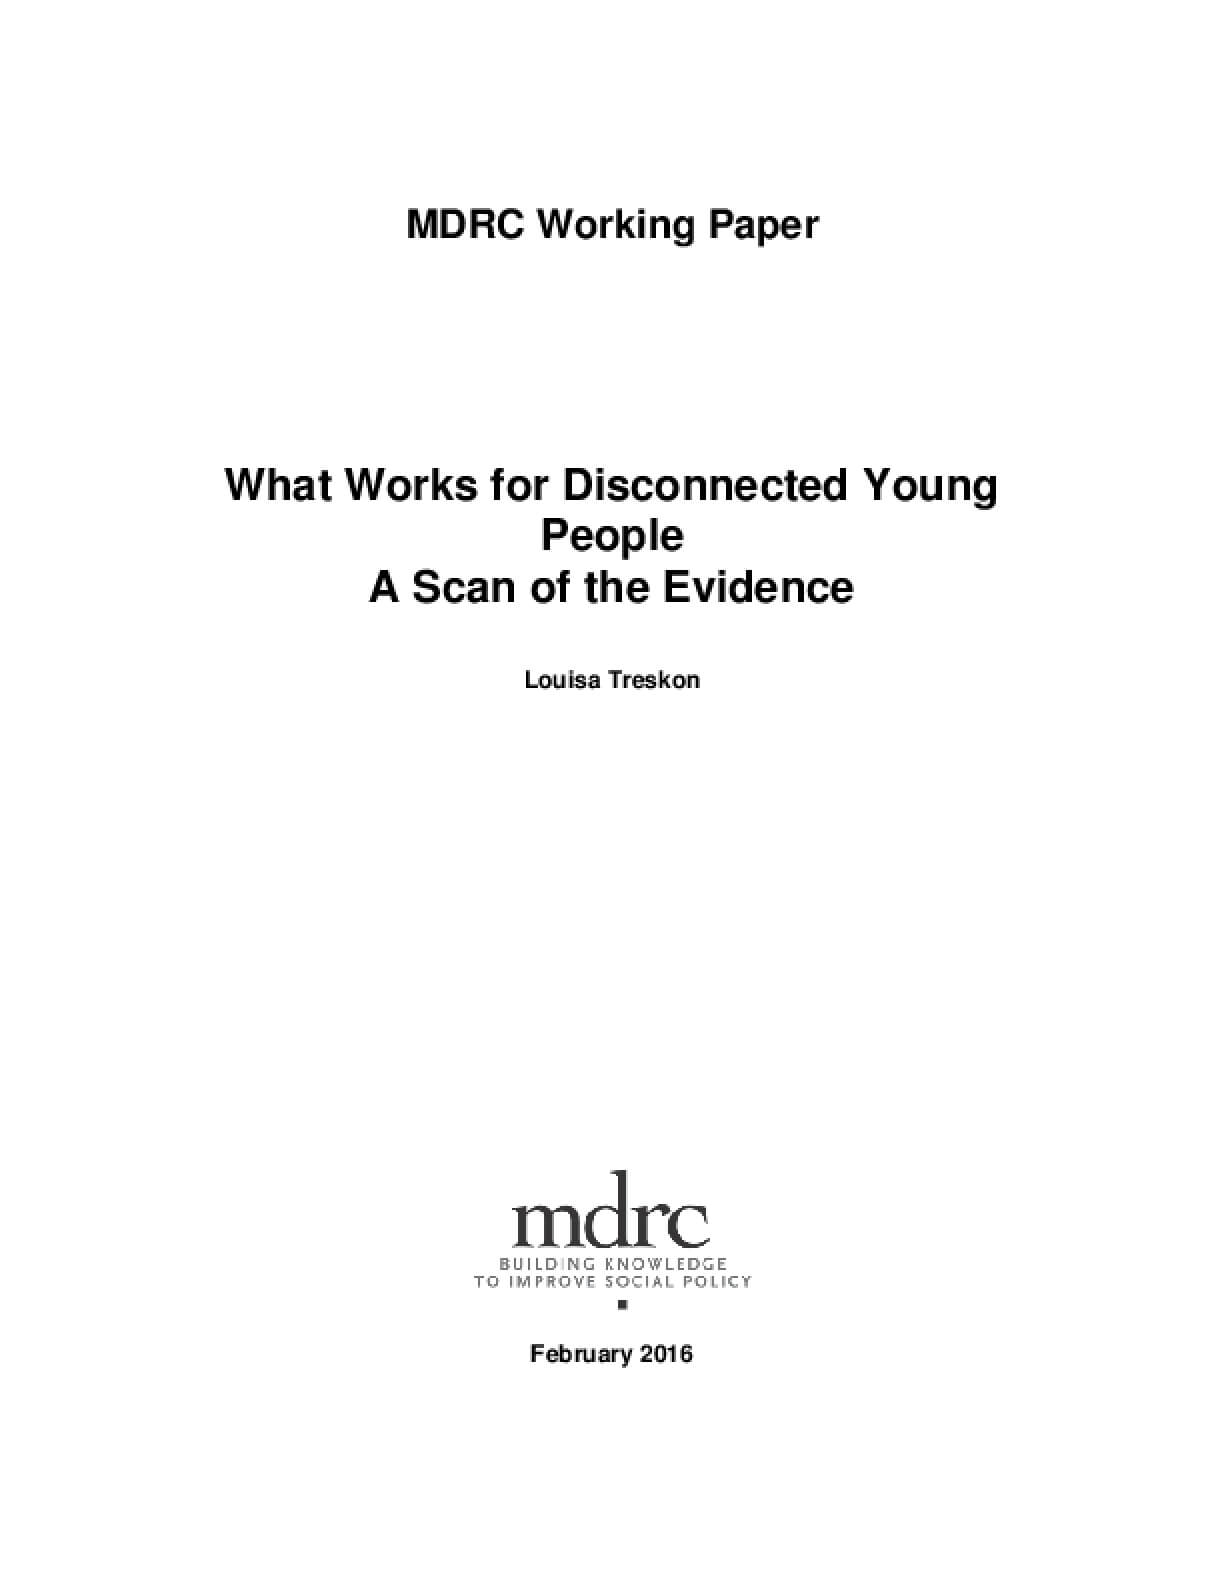 What Works for Disconnected Young People: A Scan of the Evidence